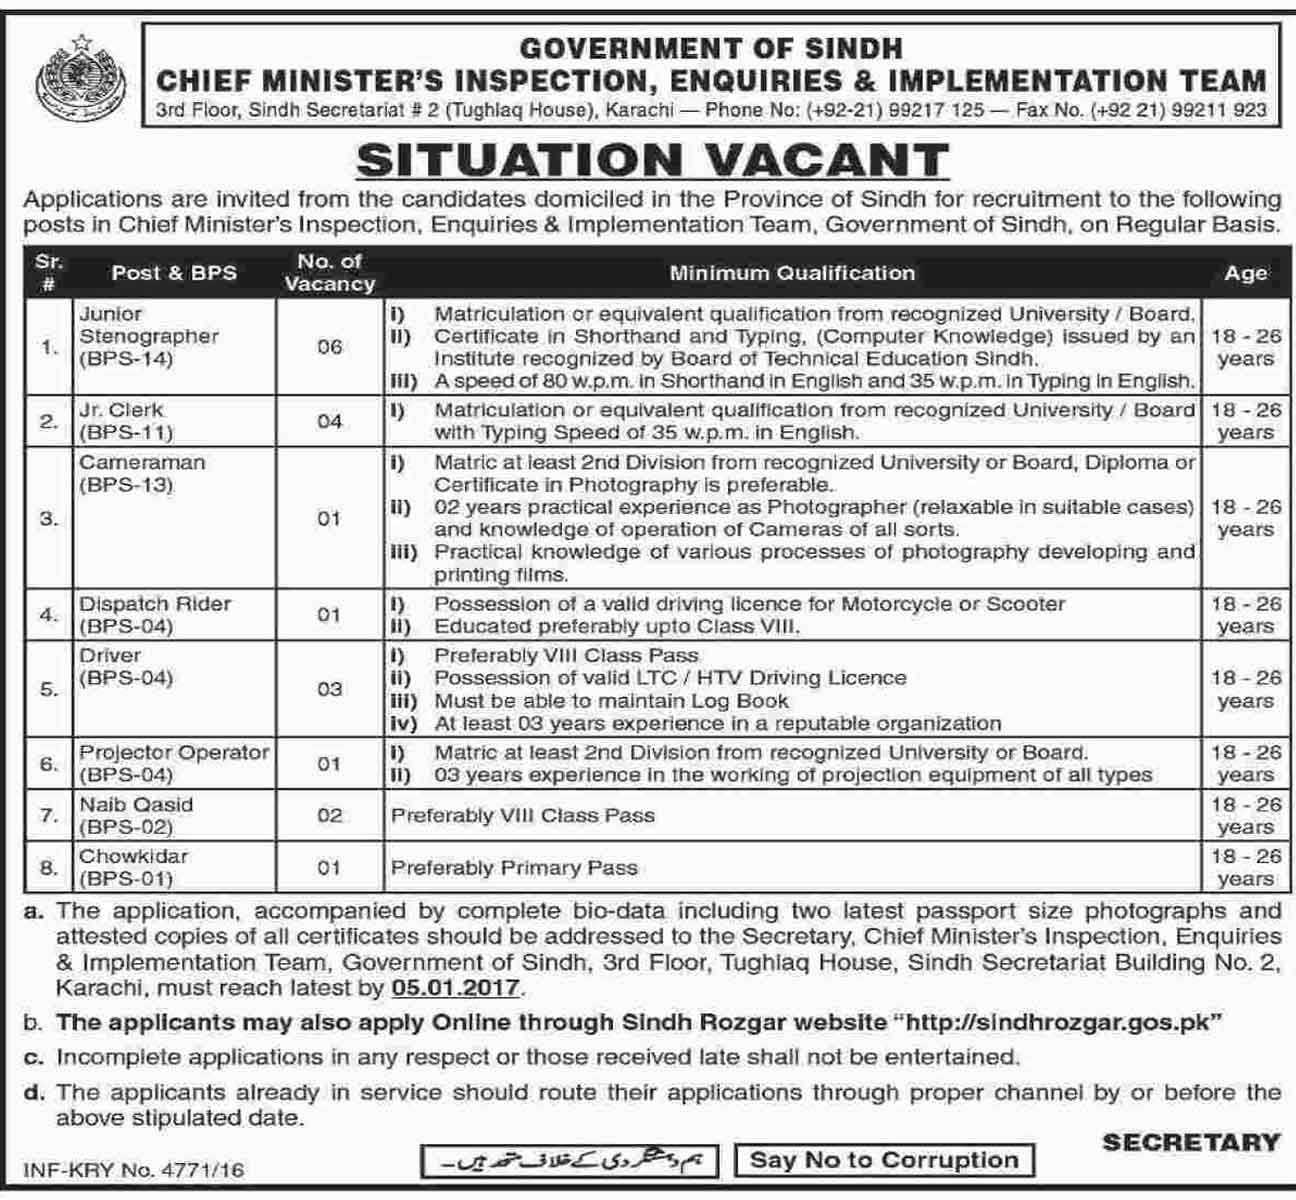 Inspection Enquiries And Implementation Team Jobs In Karachi